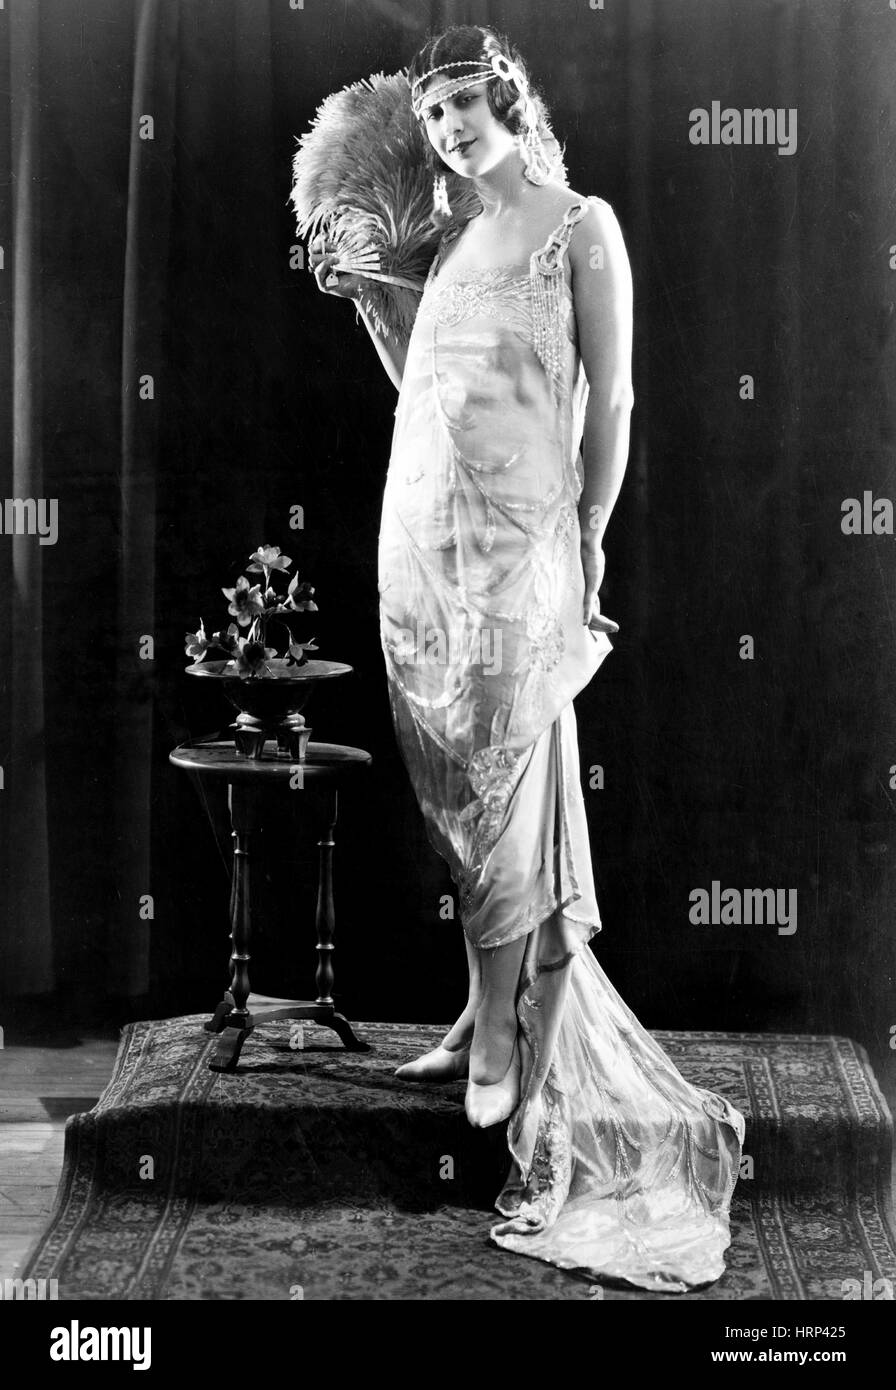 Women's Fashion, Evening Gown by Lucile, 1921 - Stock Image